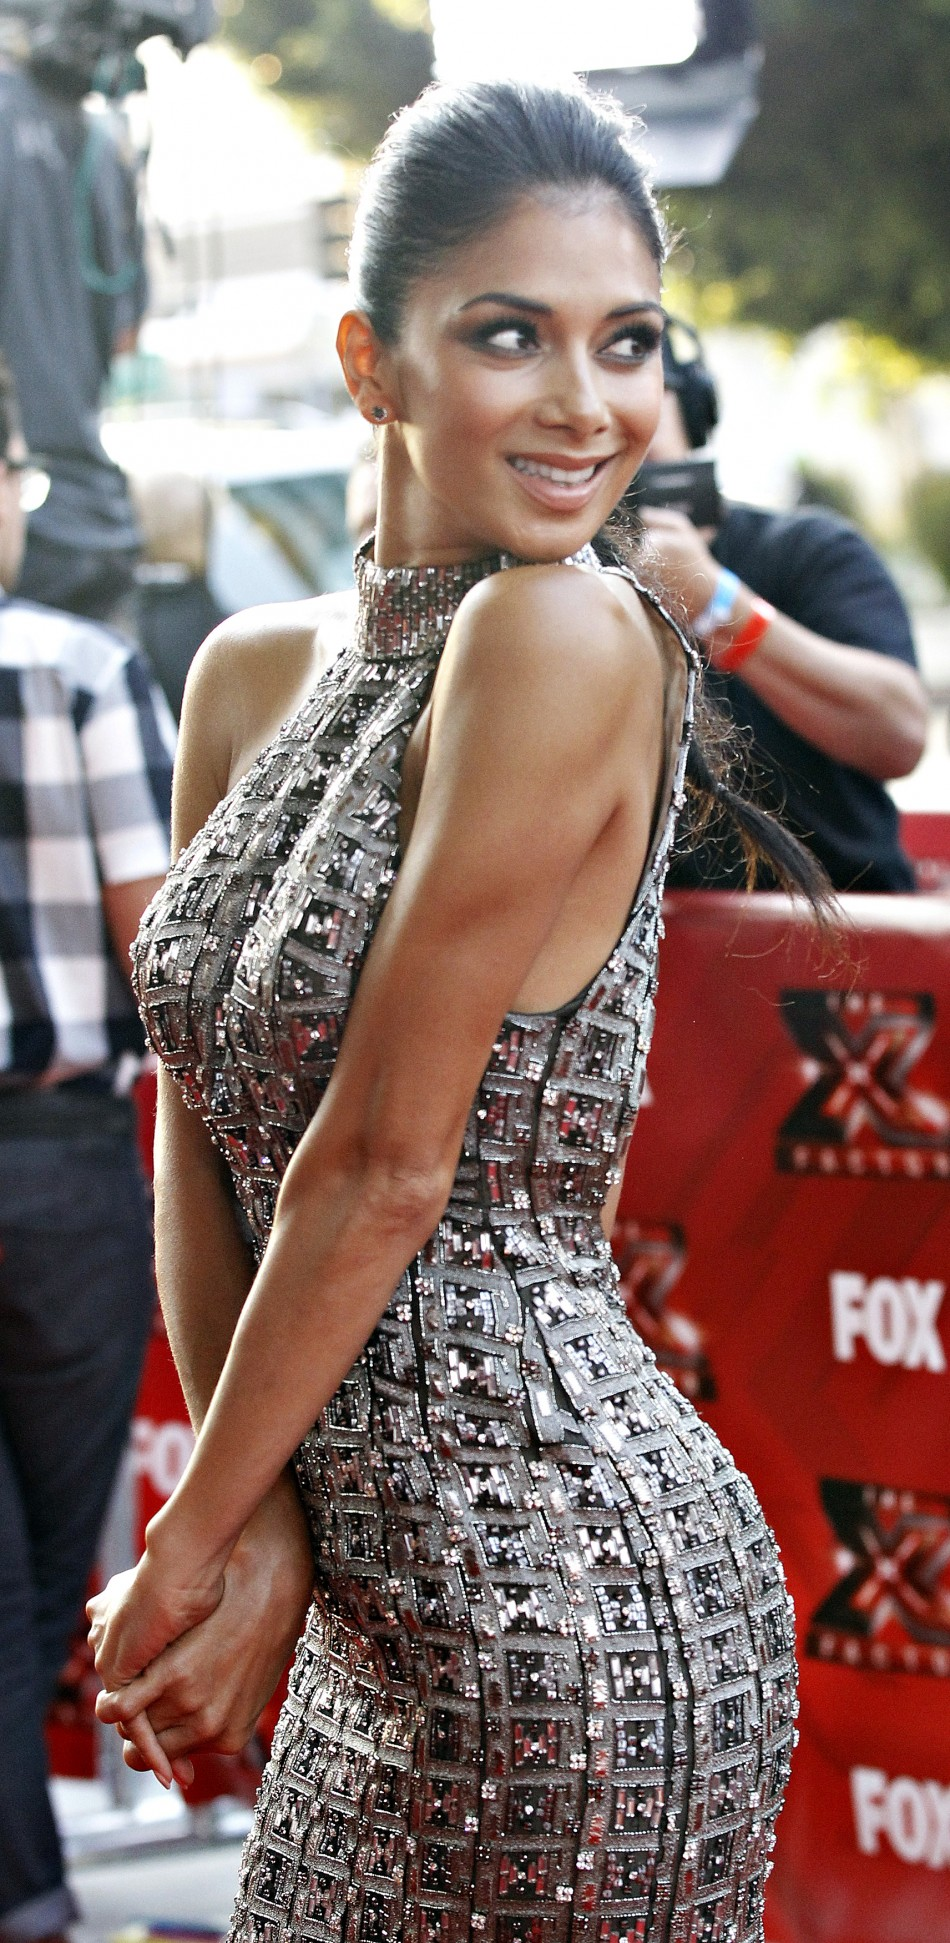 Judge Nicole Scherzinger poses at the world premiere of the television series quotThe X Factorquot at the Arclight Cinerama Dome in Hollywood, California